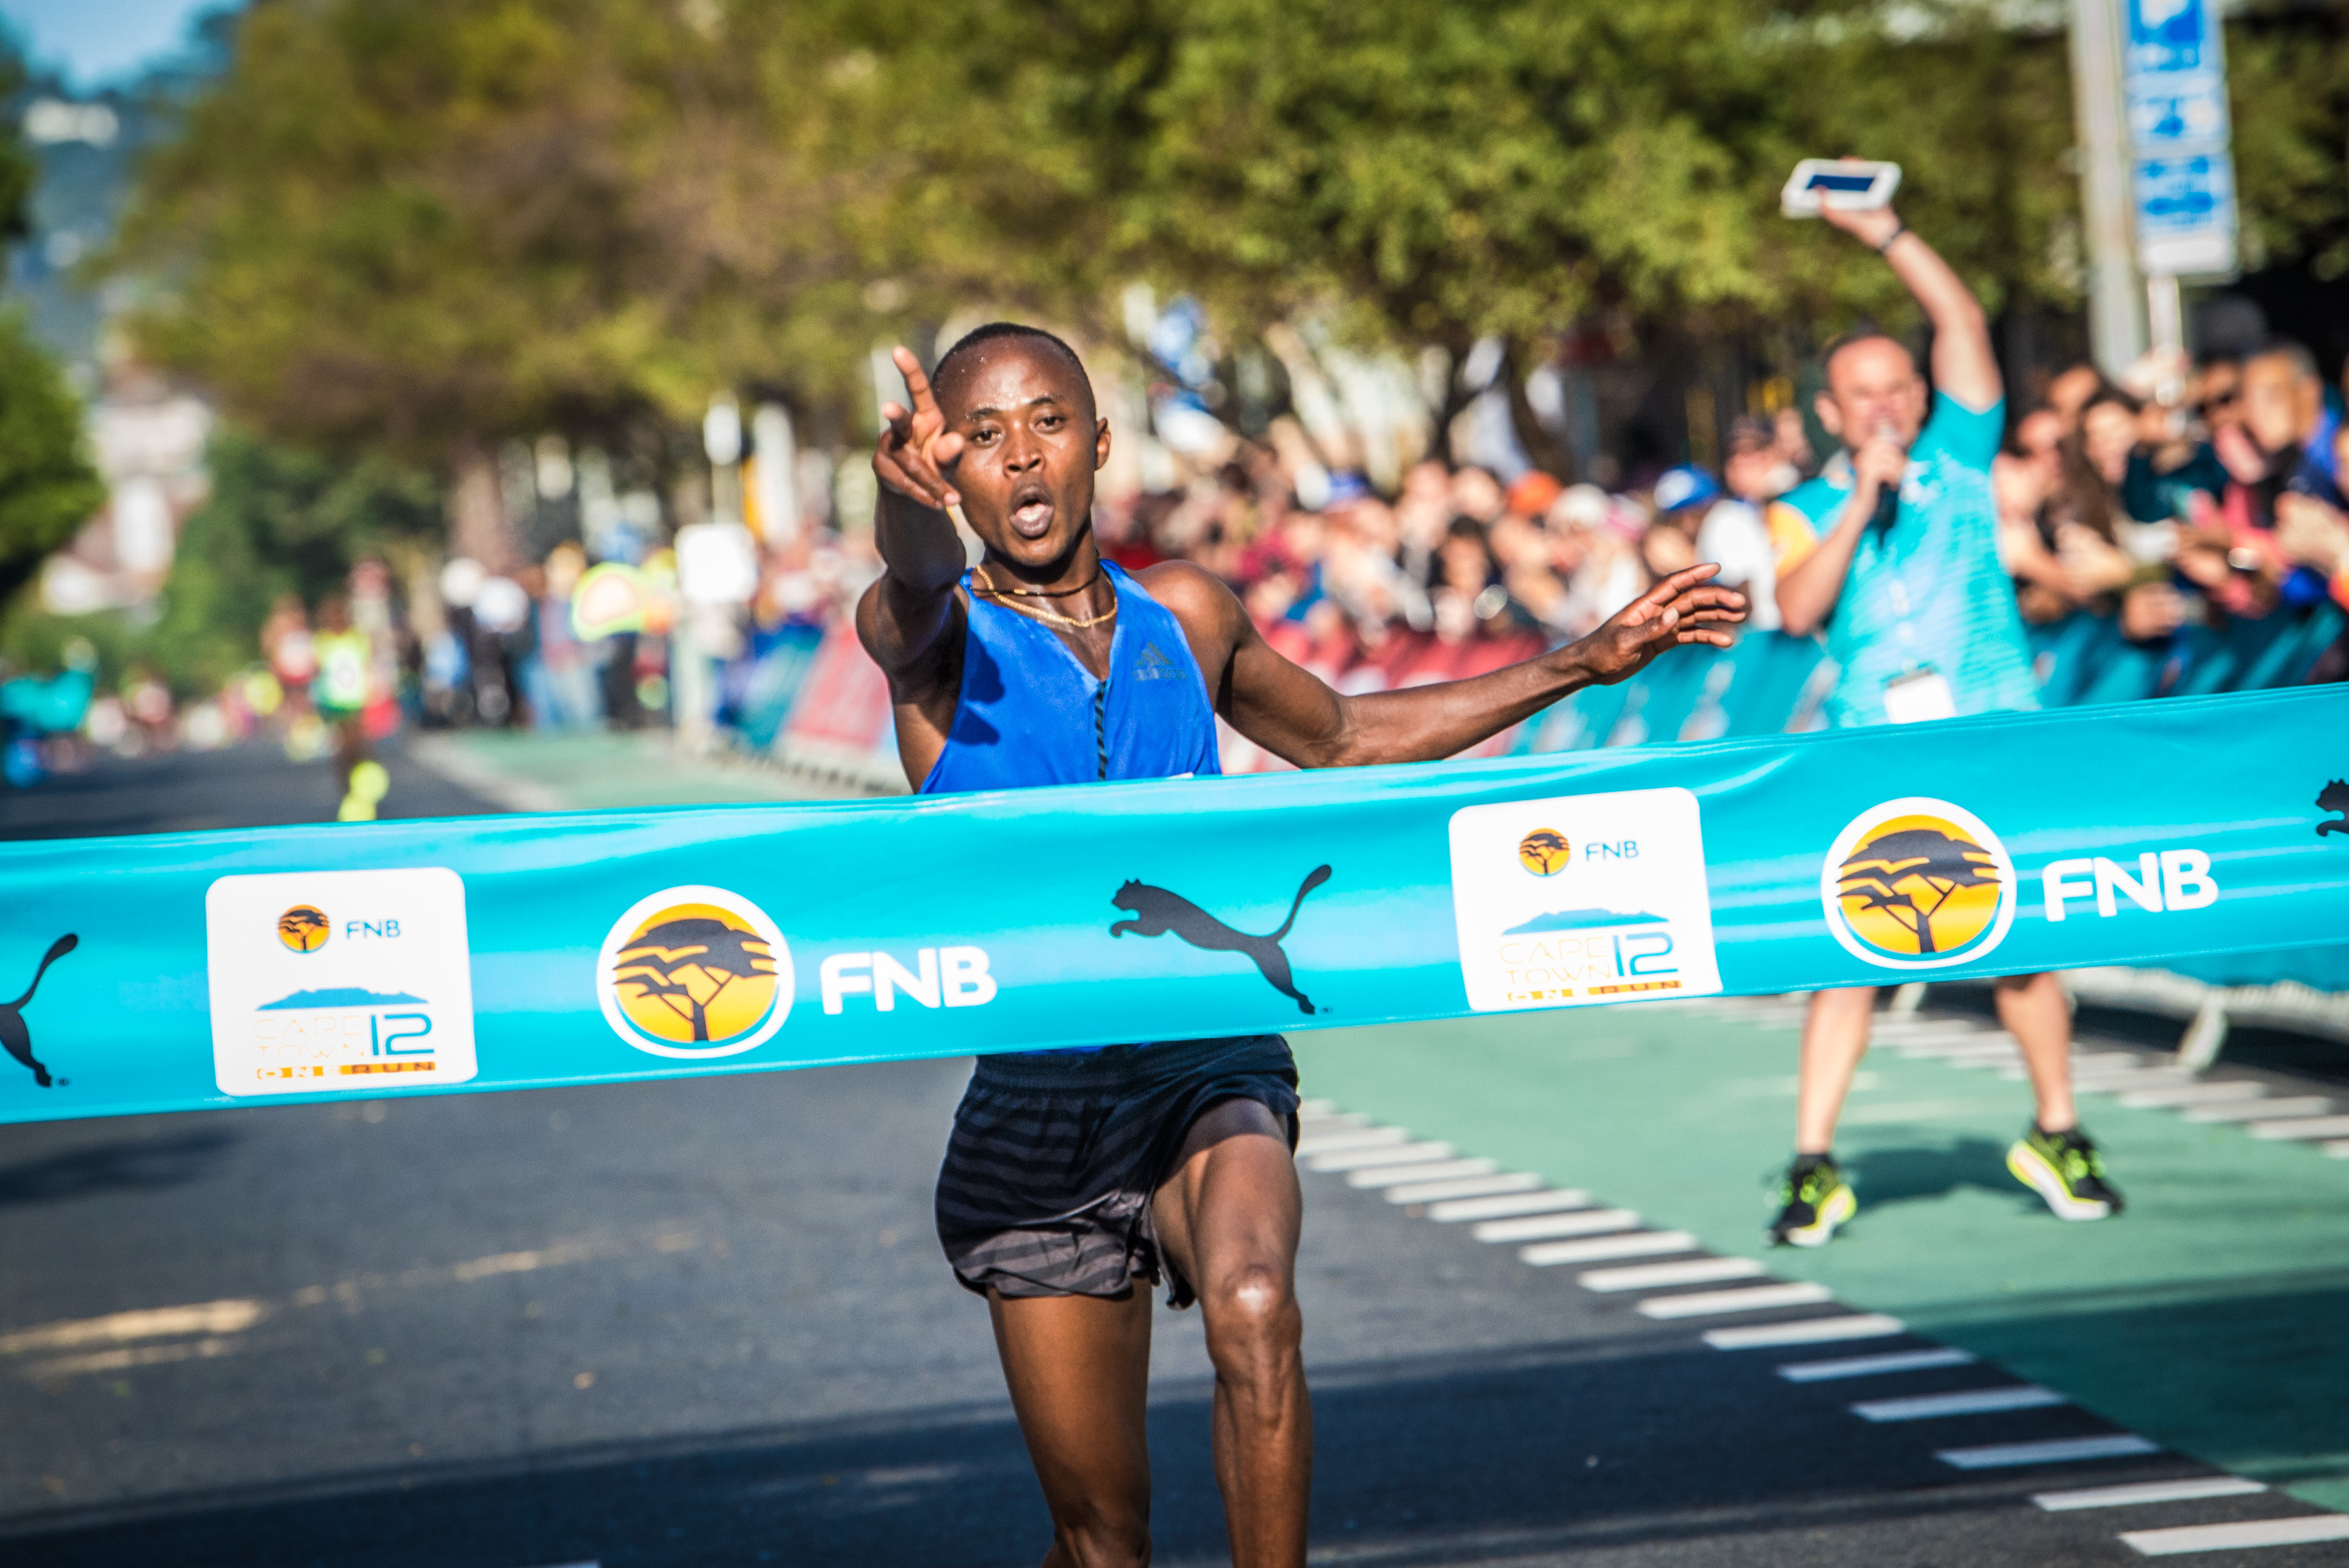 Morris Gachaga ran the world's best time for 12K in Cape Town last year and on Sunday wants to go faster